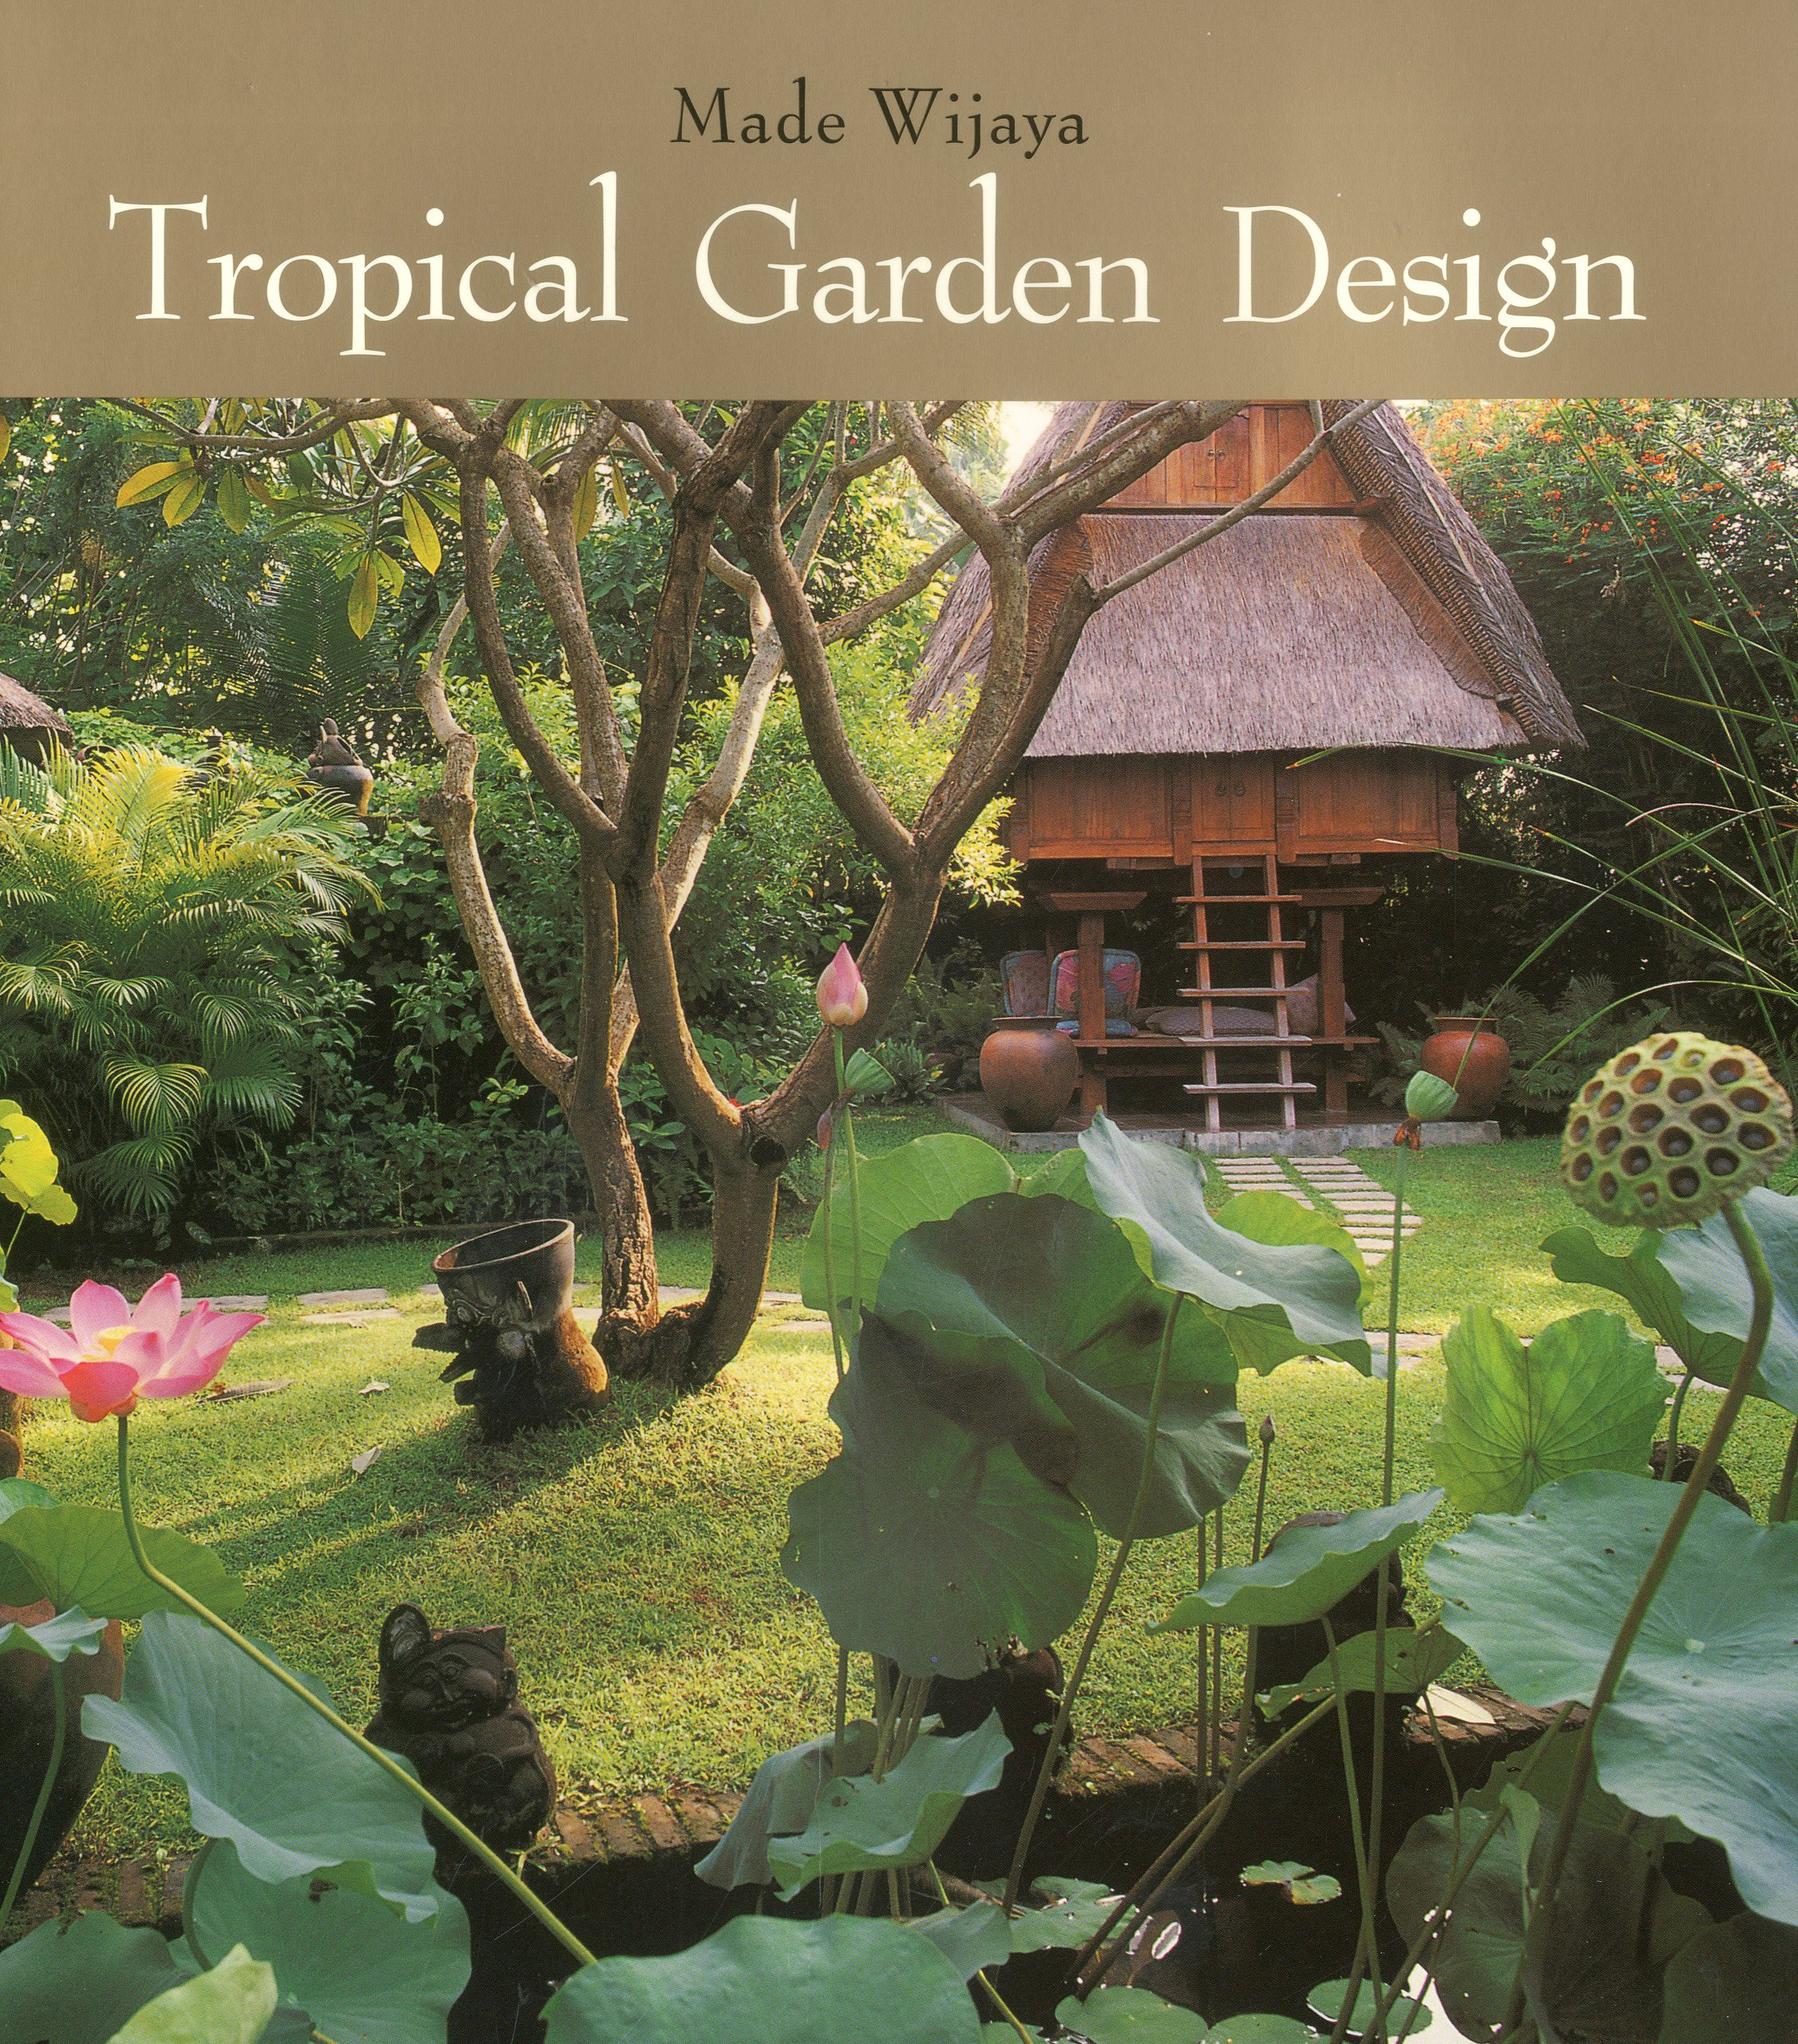 how to design a tropical garden.  Tropical Garden Design Made Wijaya 9789814068918 Amazon com Books